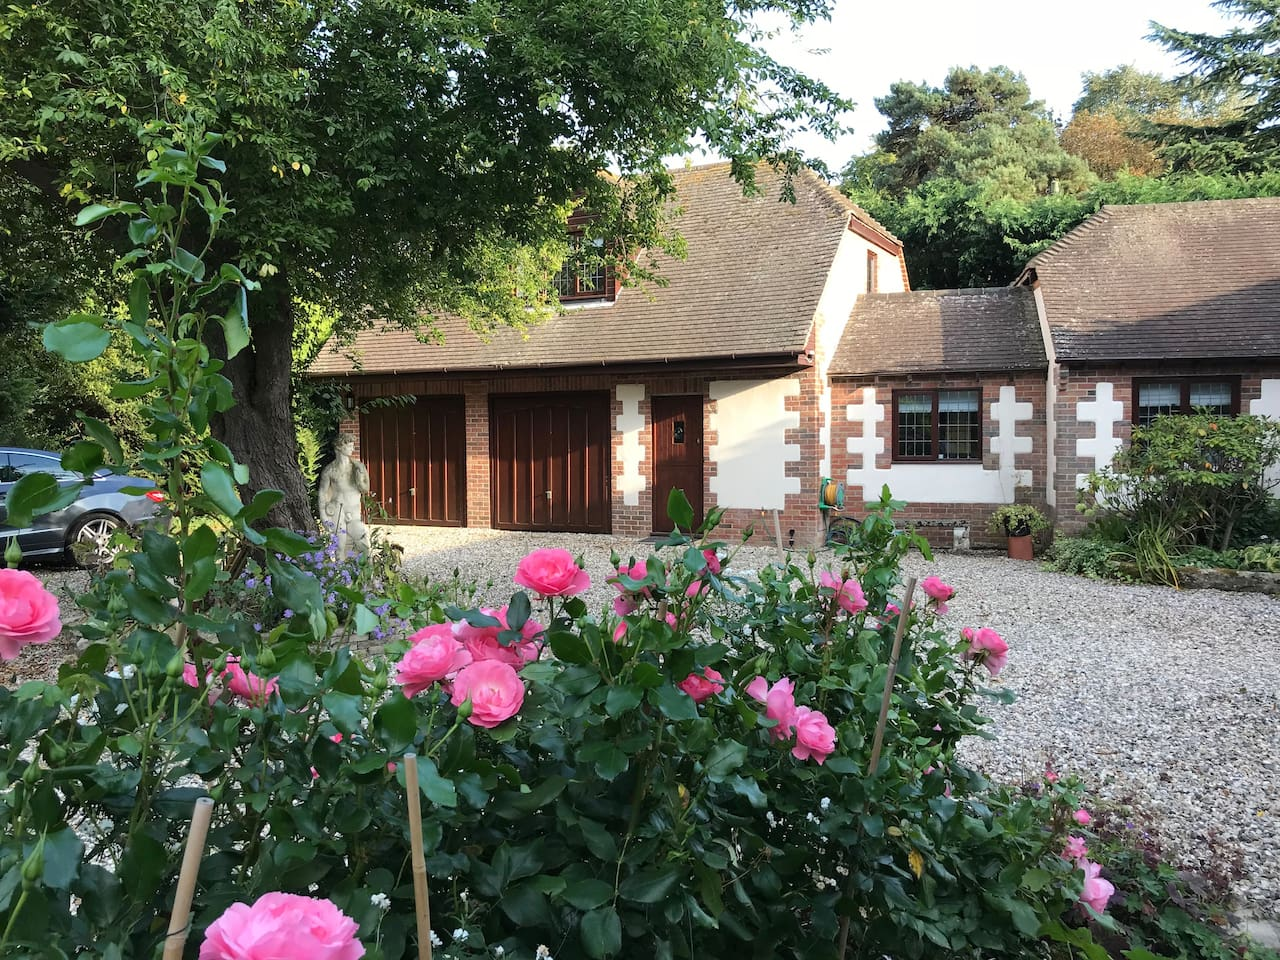 Front view of Sires Lodge annexe showing entrance door, dining room window and main bed sitting room window (above the garages). Guests are kindly requested to park immediately in front of one of the two garage doors for ease of access.